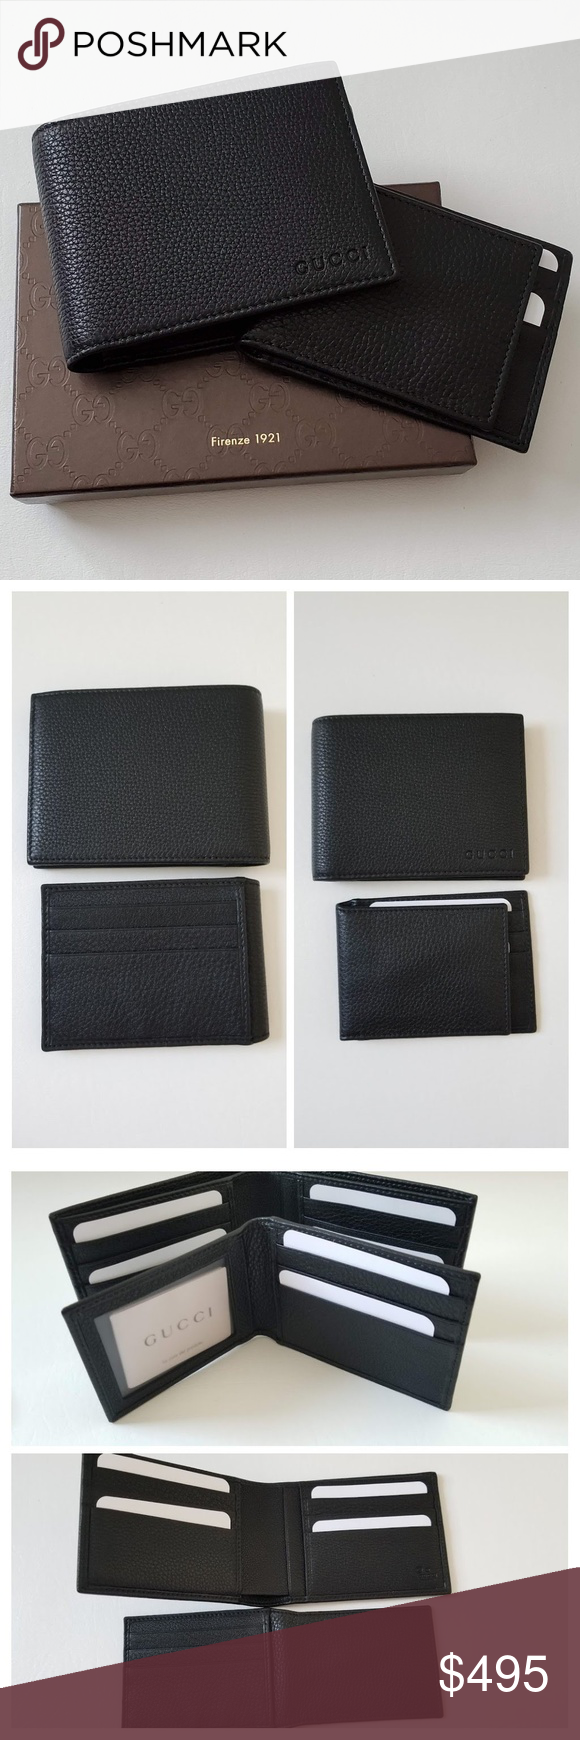 2fc818a6b55d NEW GUCCI Men Leather w removable I.D. Case Wallet **Guarantee 100% authentic  Brand